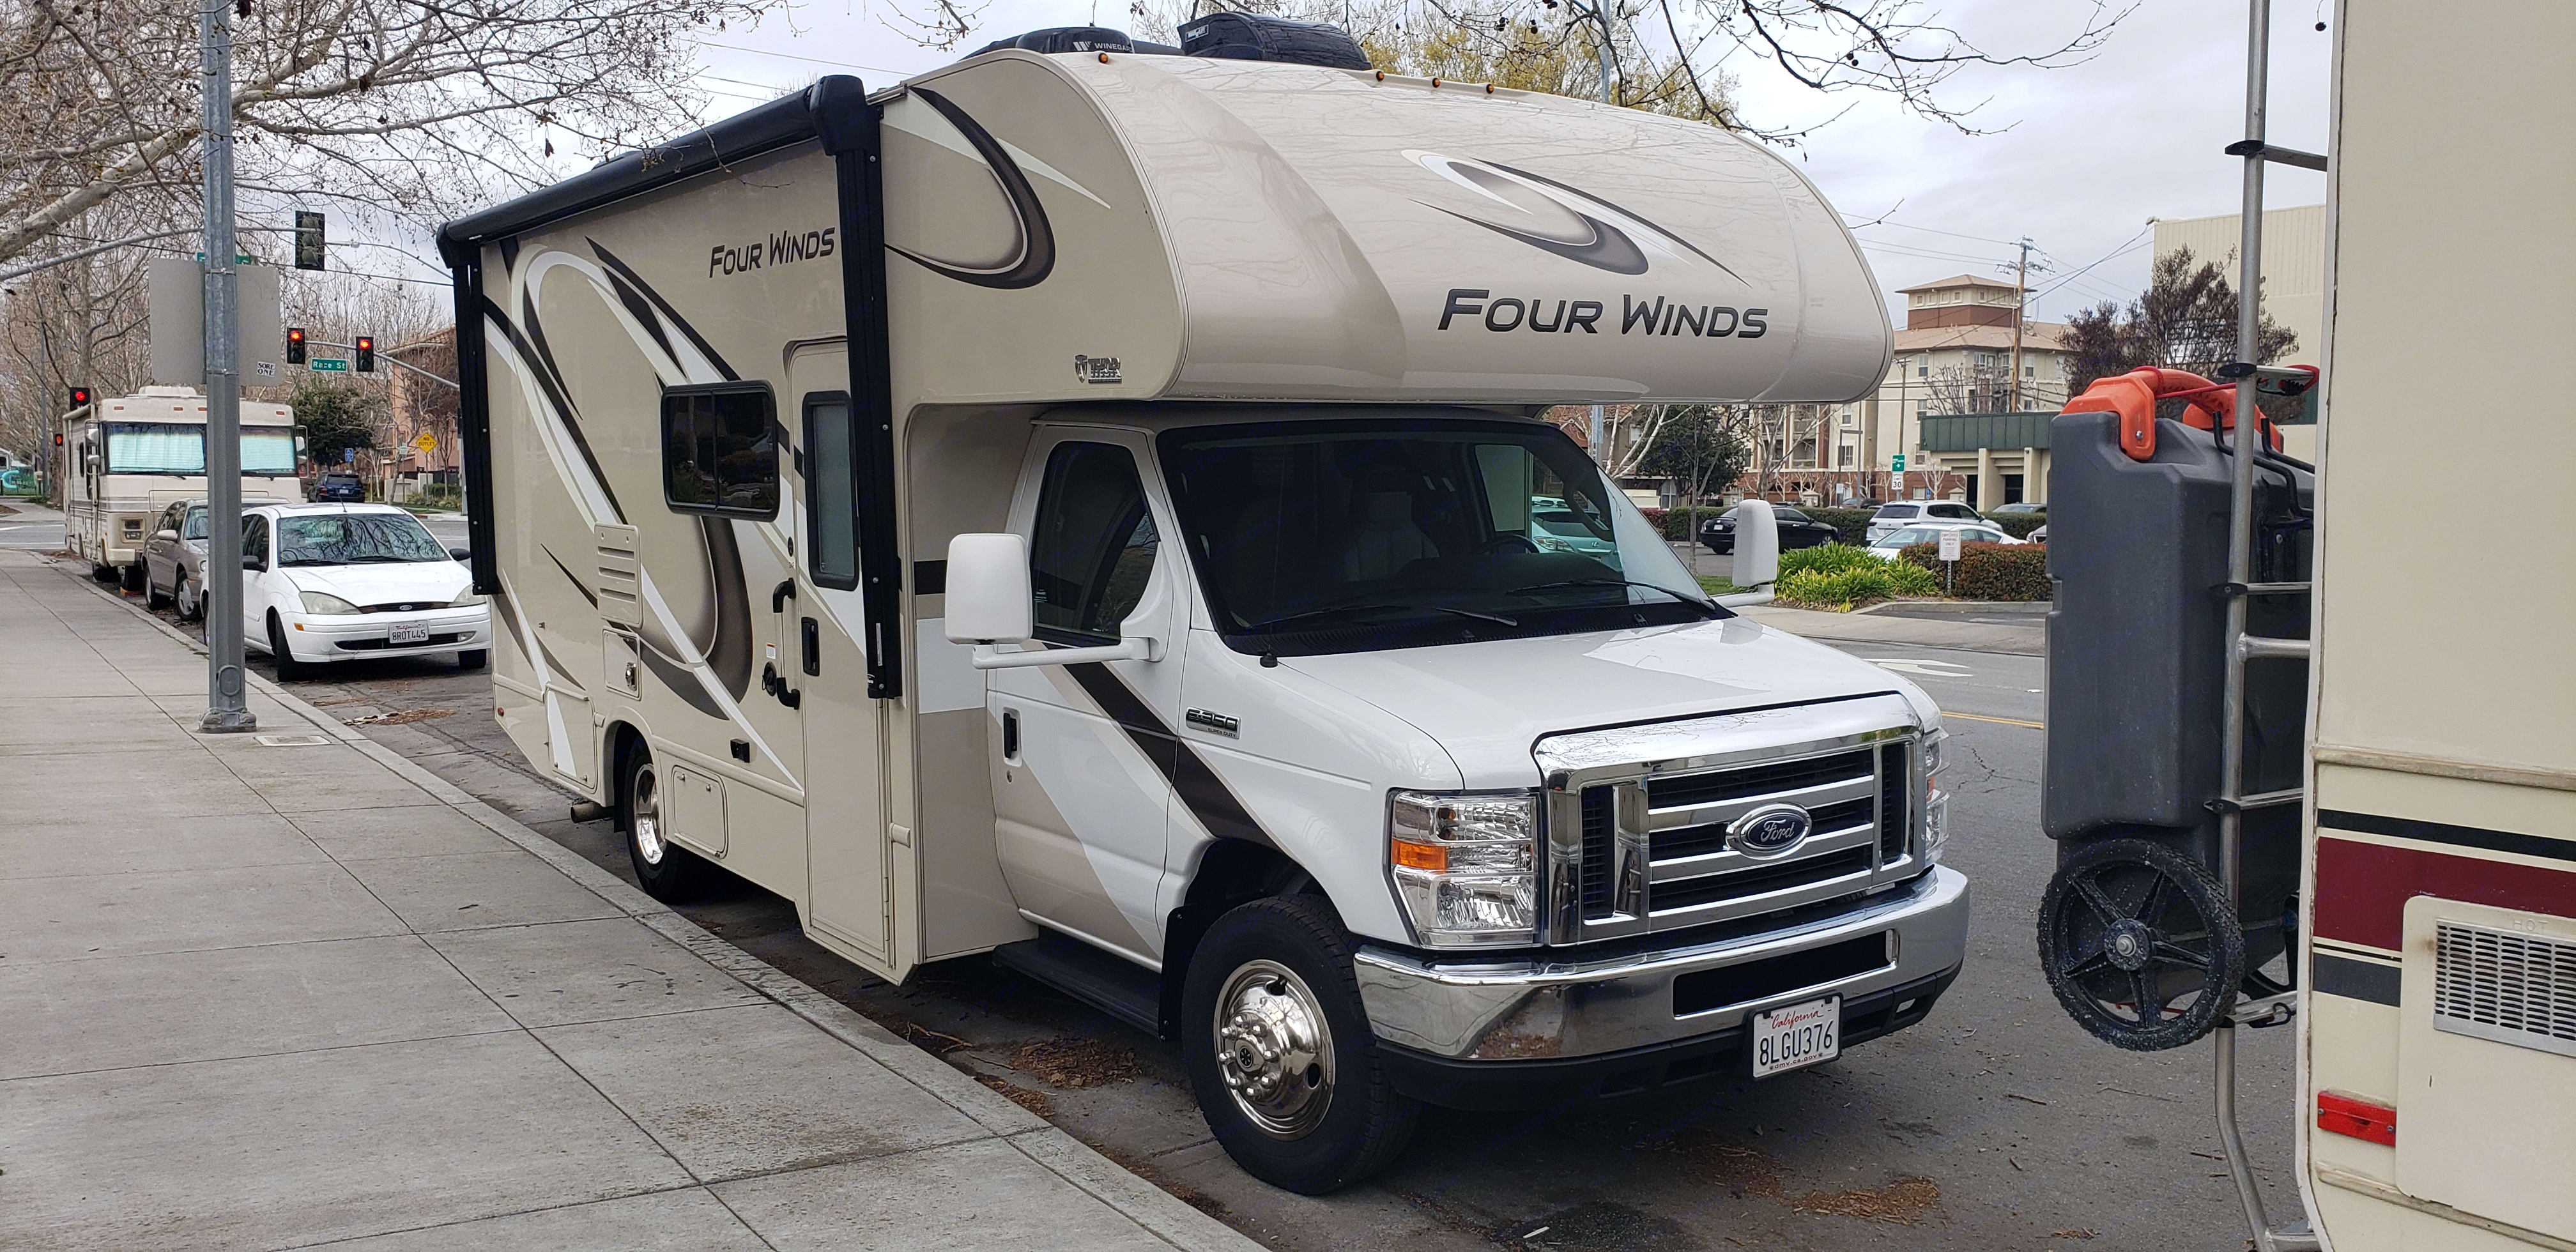 Ford Thor Motor Coach Four Winds 2020